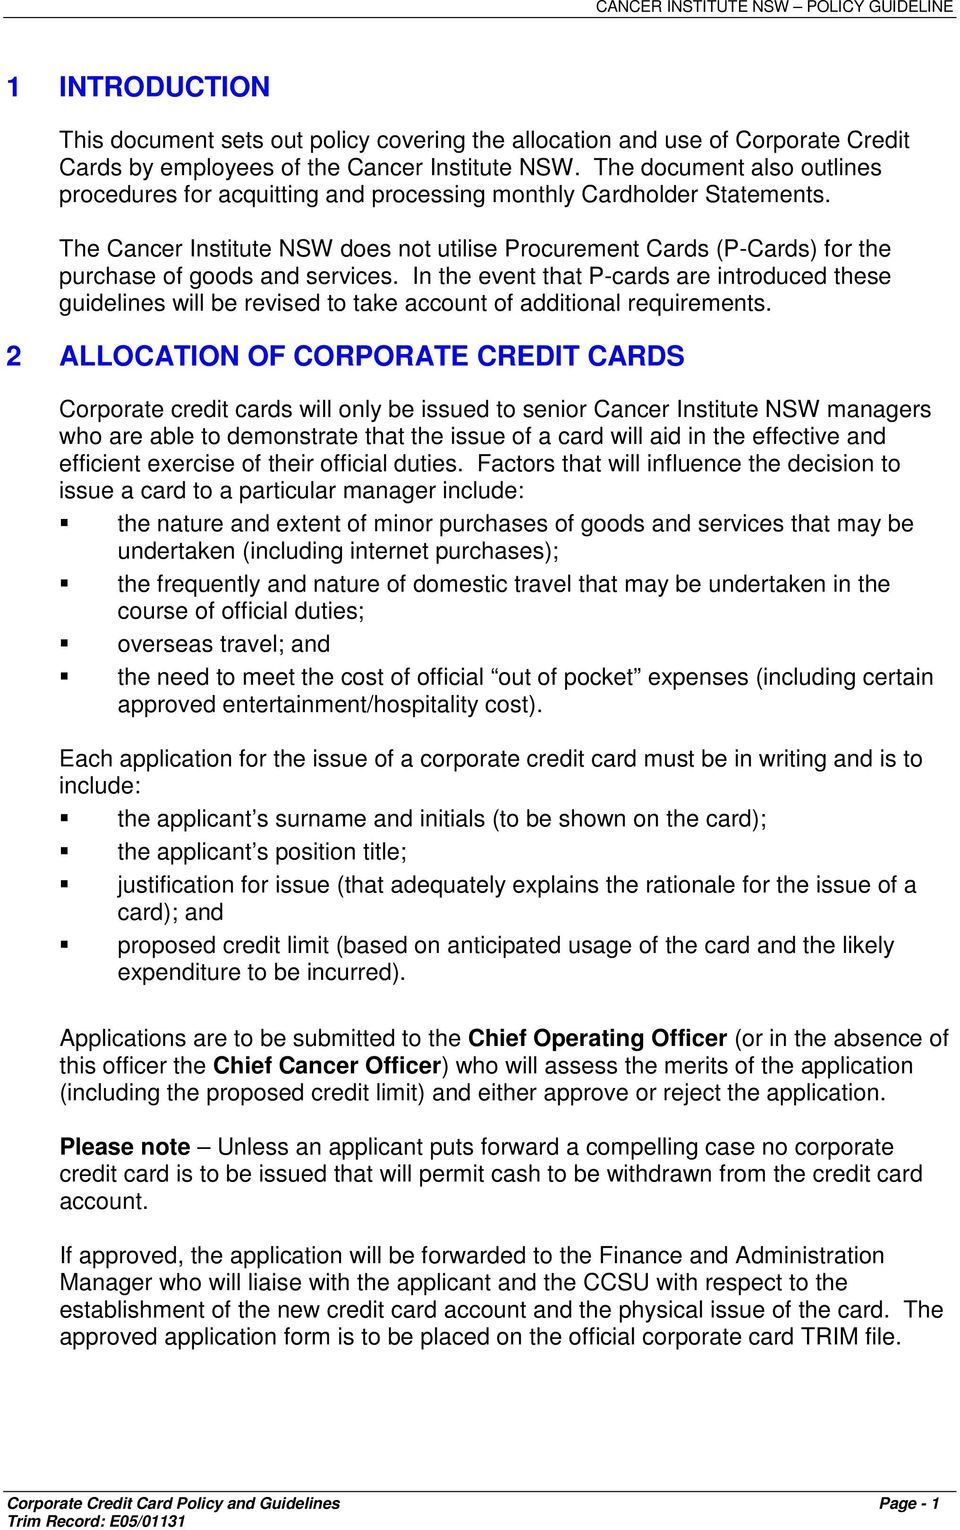 Corporate Credit Card Policy & Guidelines  Pdf. Real Psychic Readings Online. American Plumbing Des Moines What Is A Tmj. Duta Wacana Christian University. Freelance Web Designer Websites. University Of Maryland Mail Credit Card Pros. Brake Caliper Temperature Stafford Loan Rates. Dodge Dealership El Paso Tx Bank Of Itasca. Penn Foster Online Courses Tanner City Auto